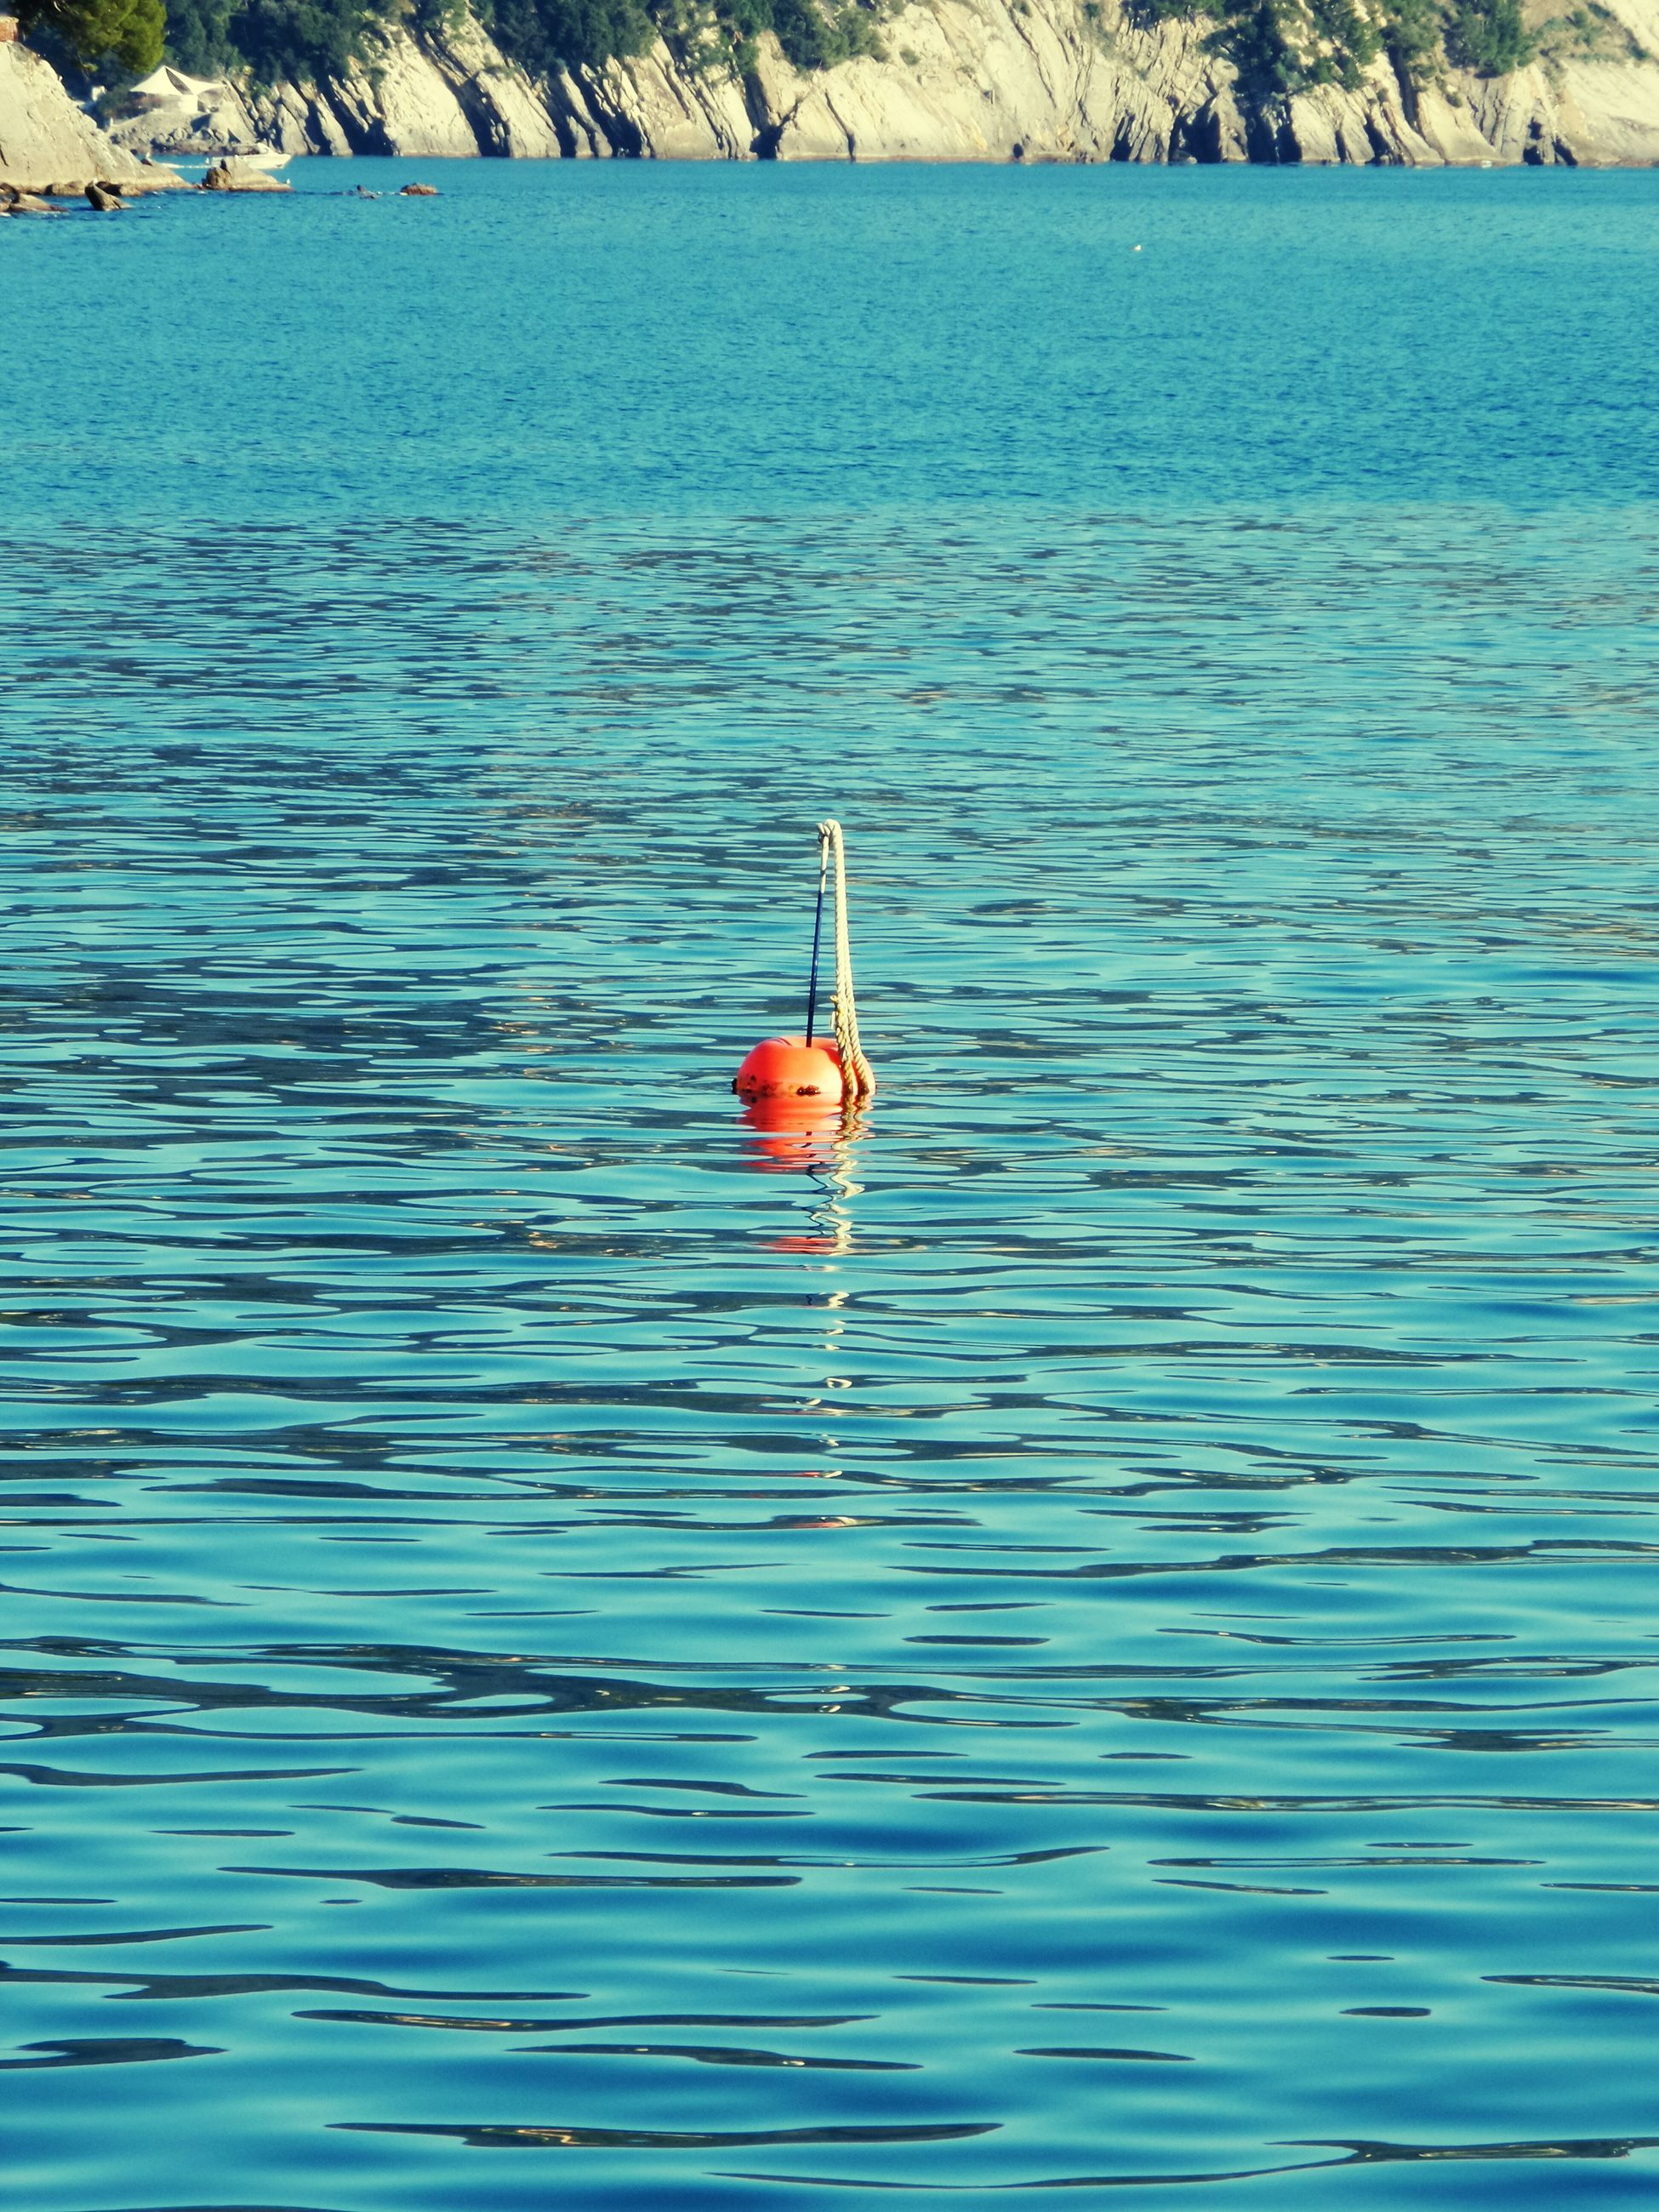 water, waterfront, swimming, rippled, lake, blue, nature, high angle view, animals in the wild, animal themes, tranquility, beauty in nature, sea, wildlife, day, floating on water, outdoors, tranquil scene, bird, scenics